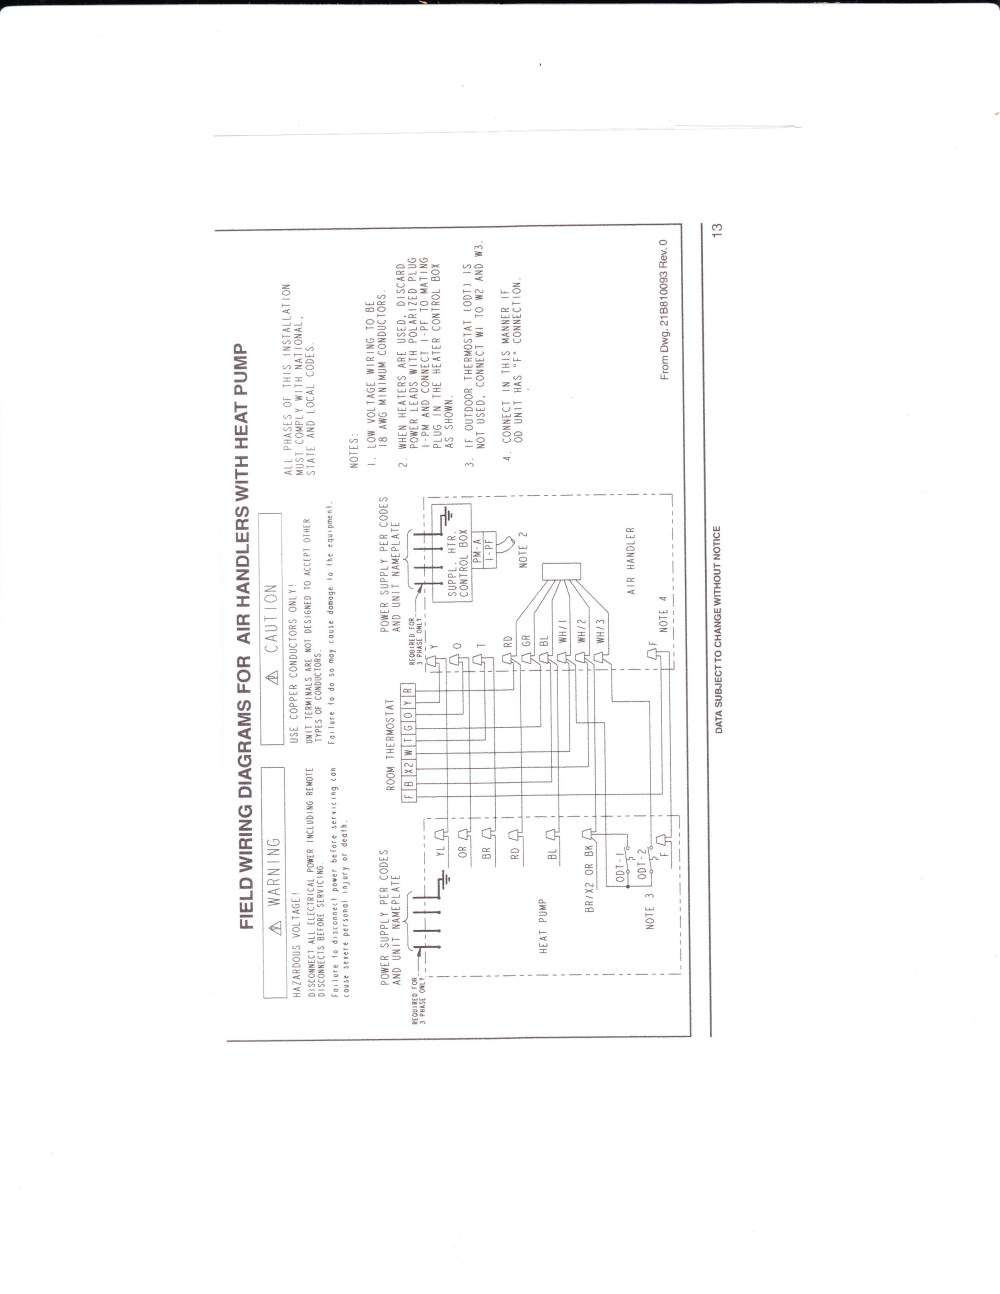 medium resolution of white rodgers thermostat wiring diagram 1f79